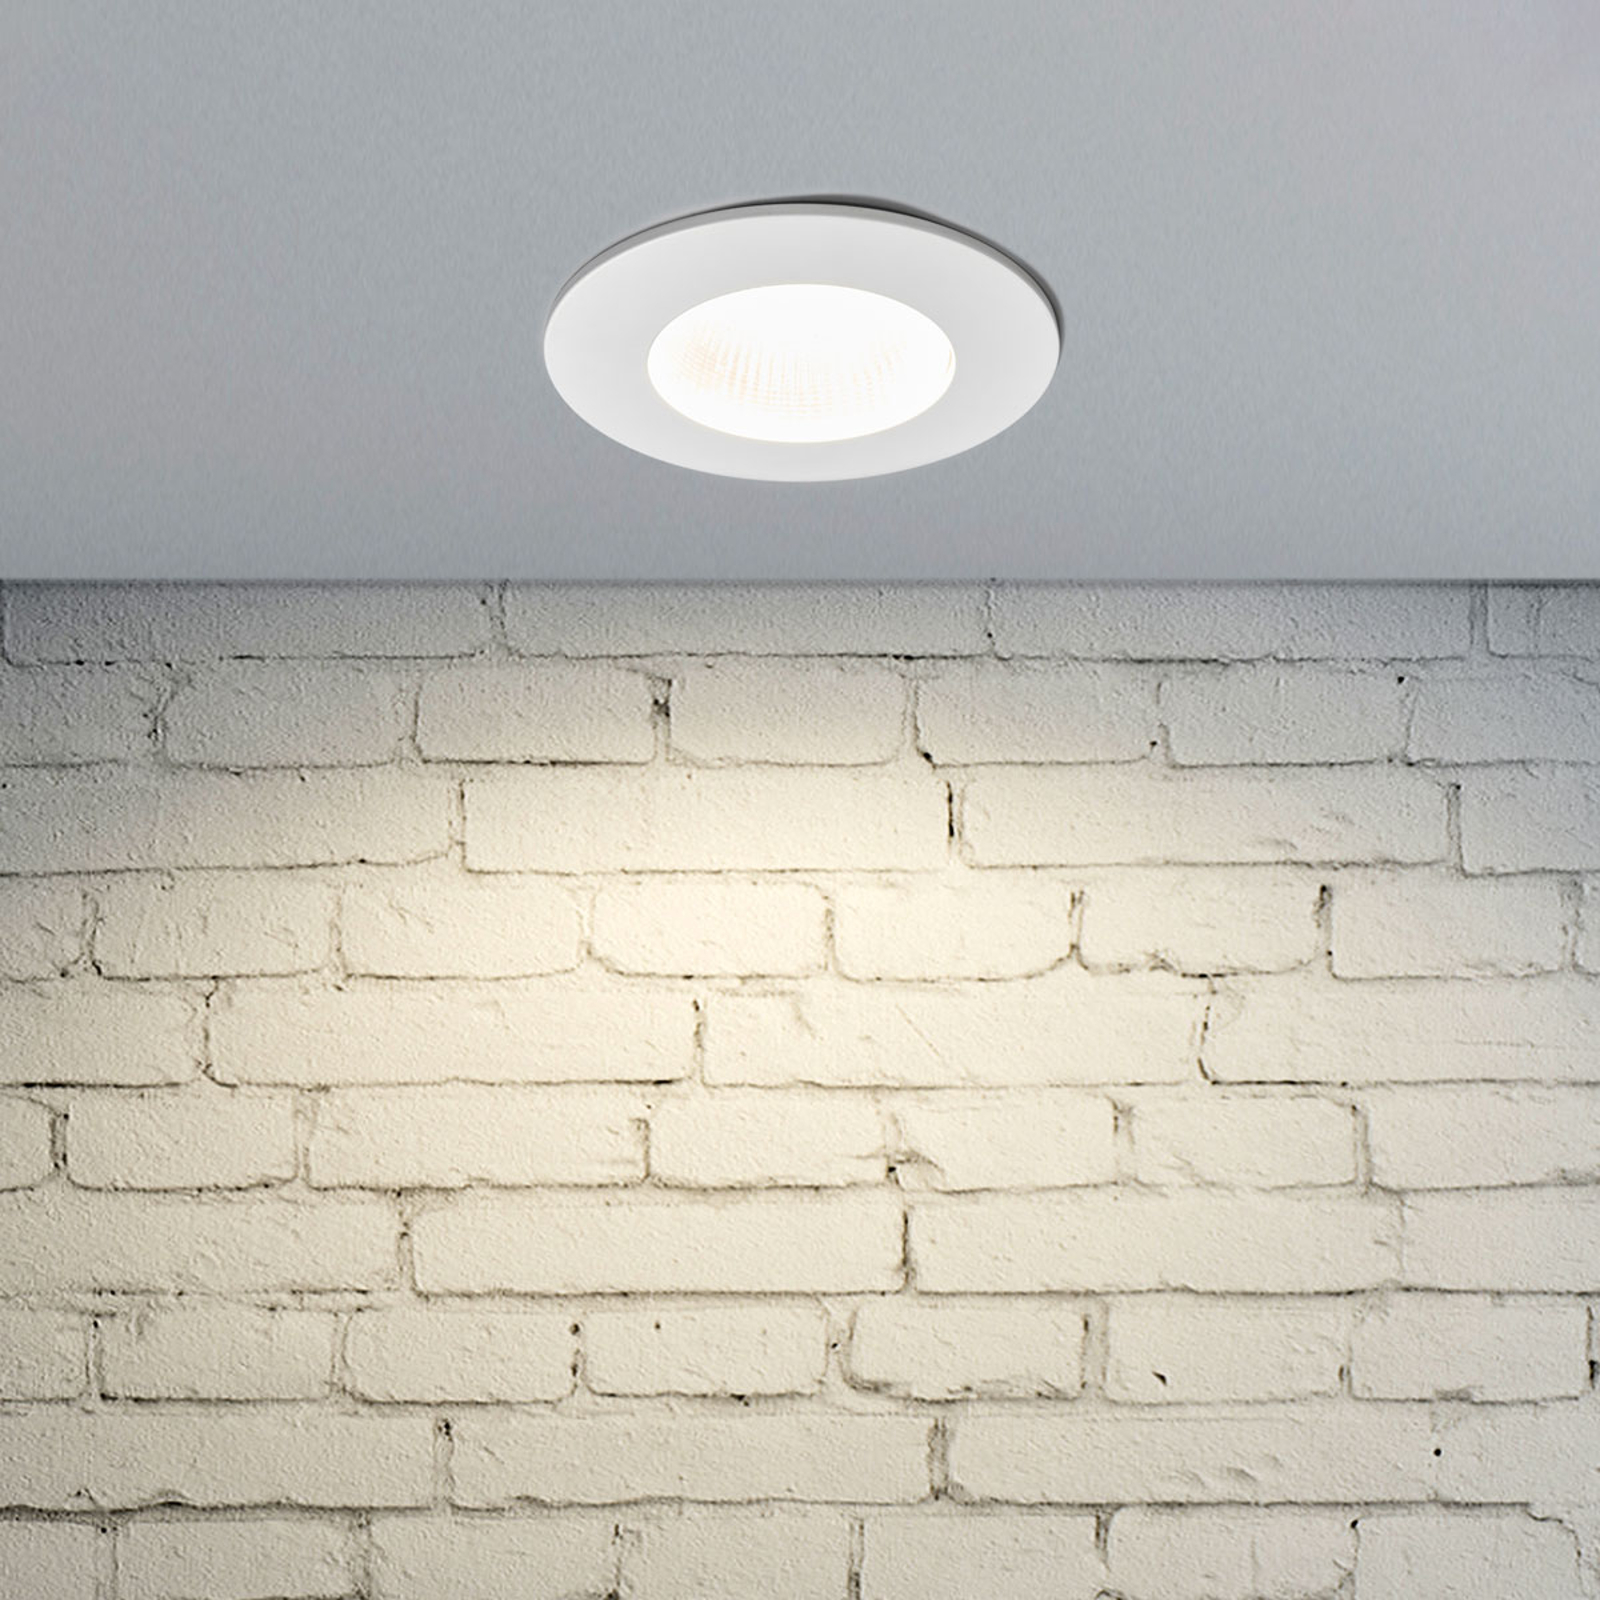 LED-downlight Kamilla, hvit, IP65, 11W